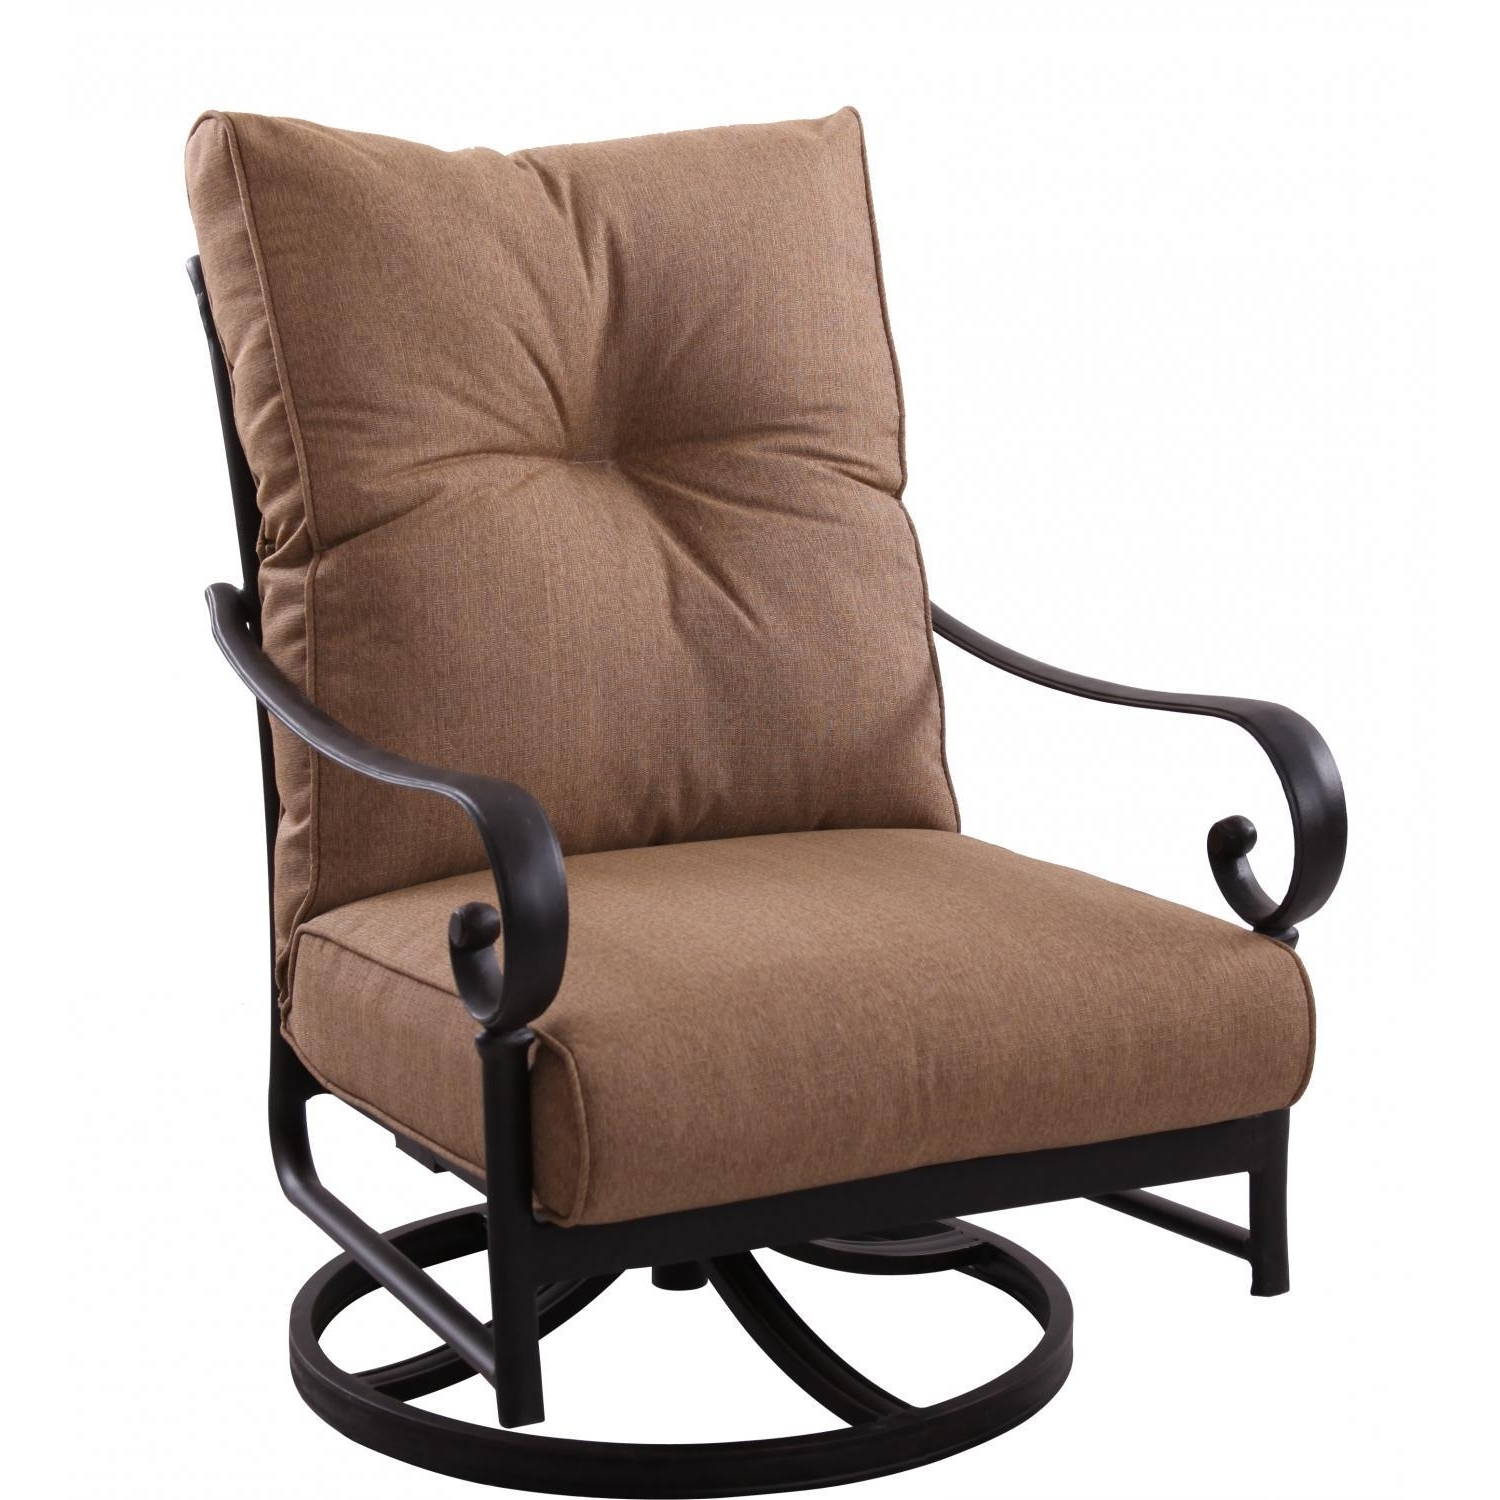 Darlee Santa Anita Cast Aluminum Patio Swivel Rocker Club Chair In 2019 Patio Rocking Chairs With Covers (View 15 of 20)